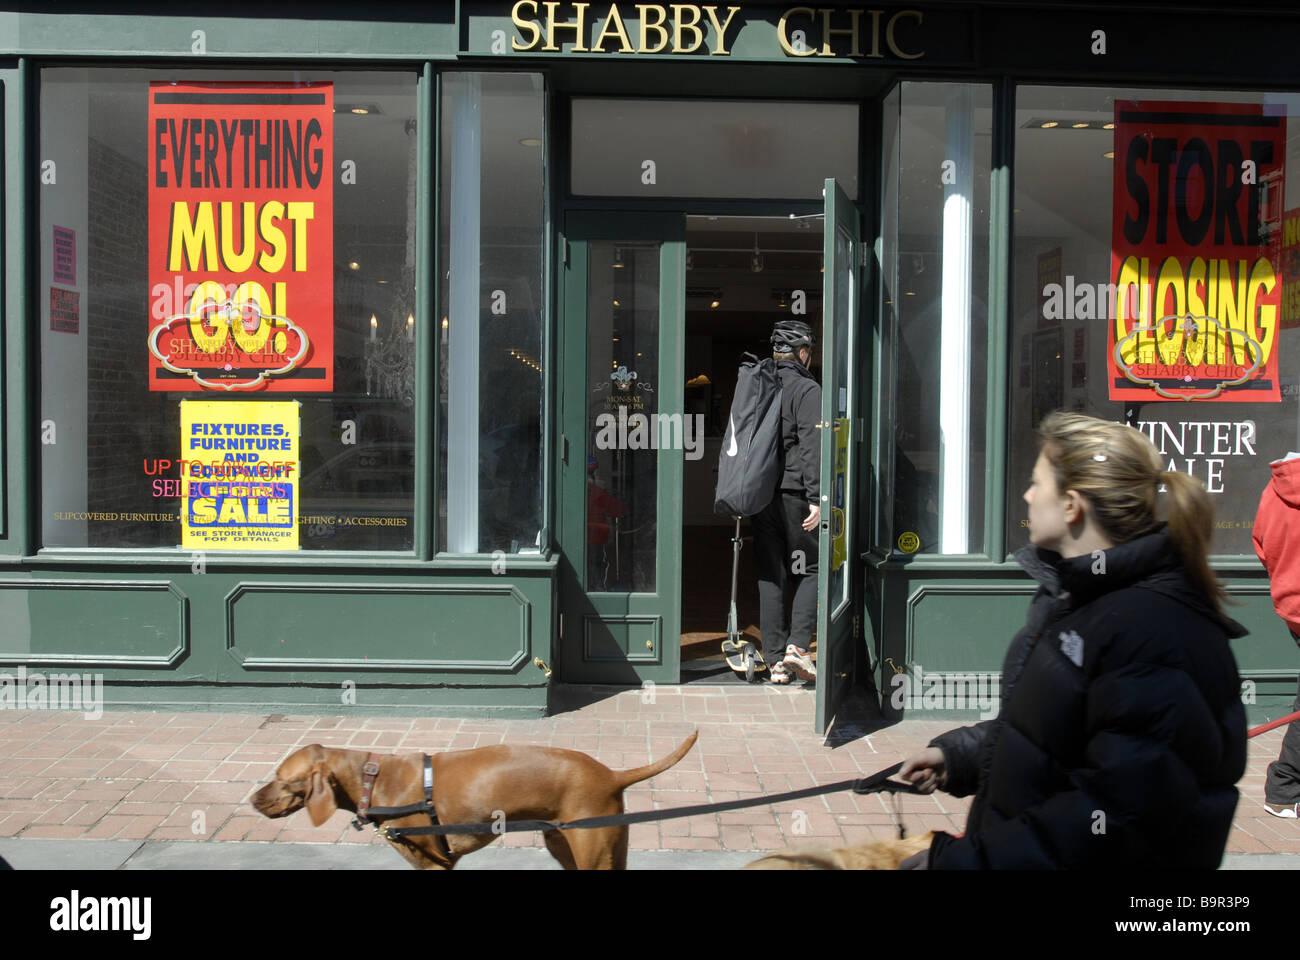 Shoppers pass the soon to close Shabby Chic store in the Upper West Side neighborhood of New York - Stock Image